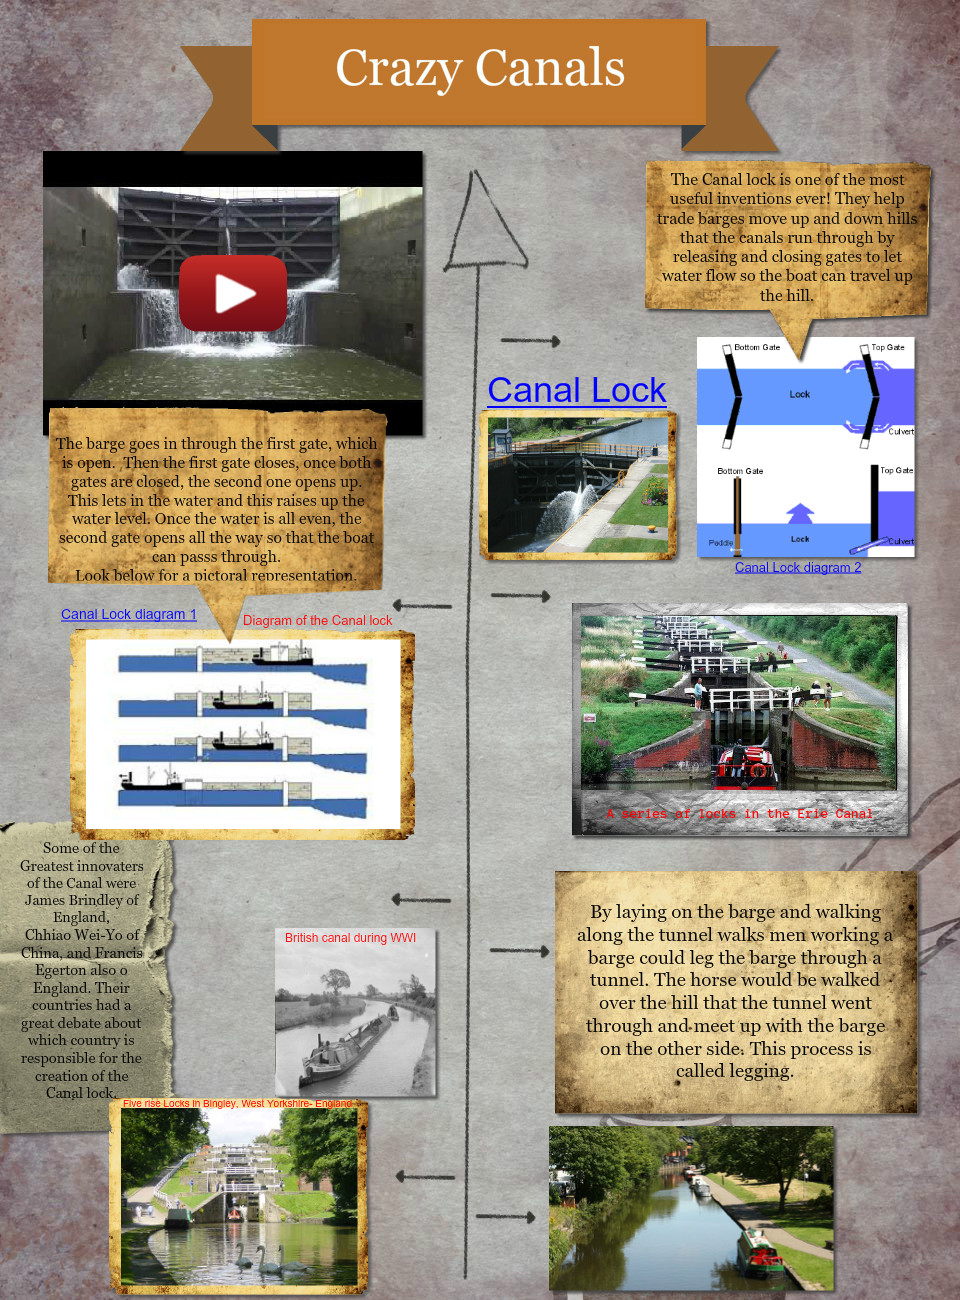 The canal System